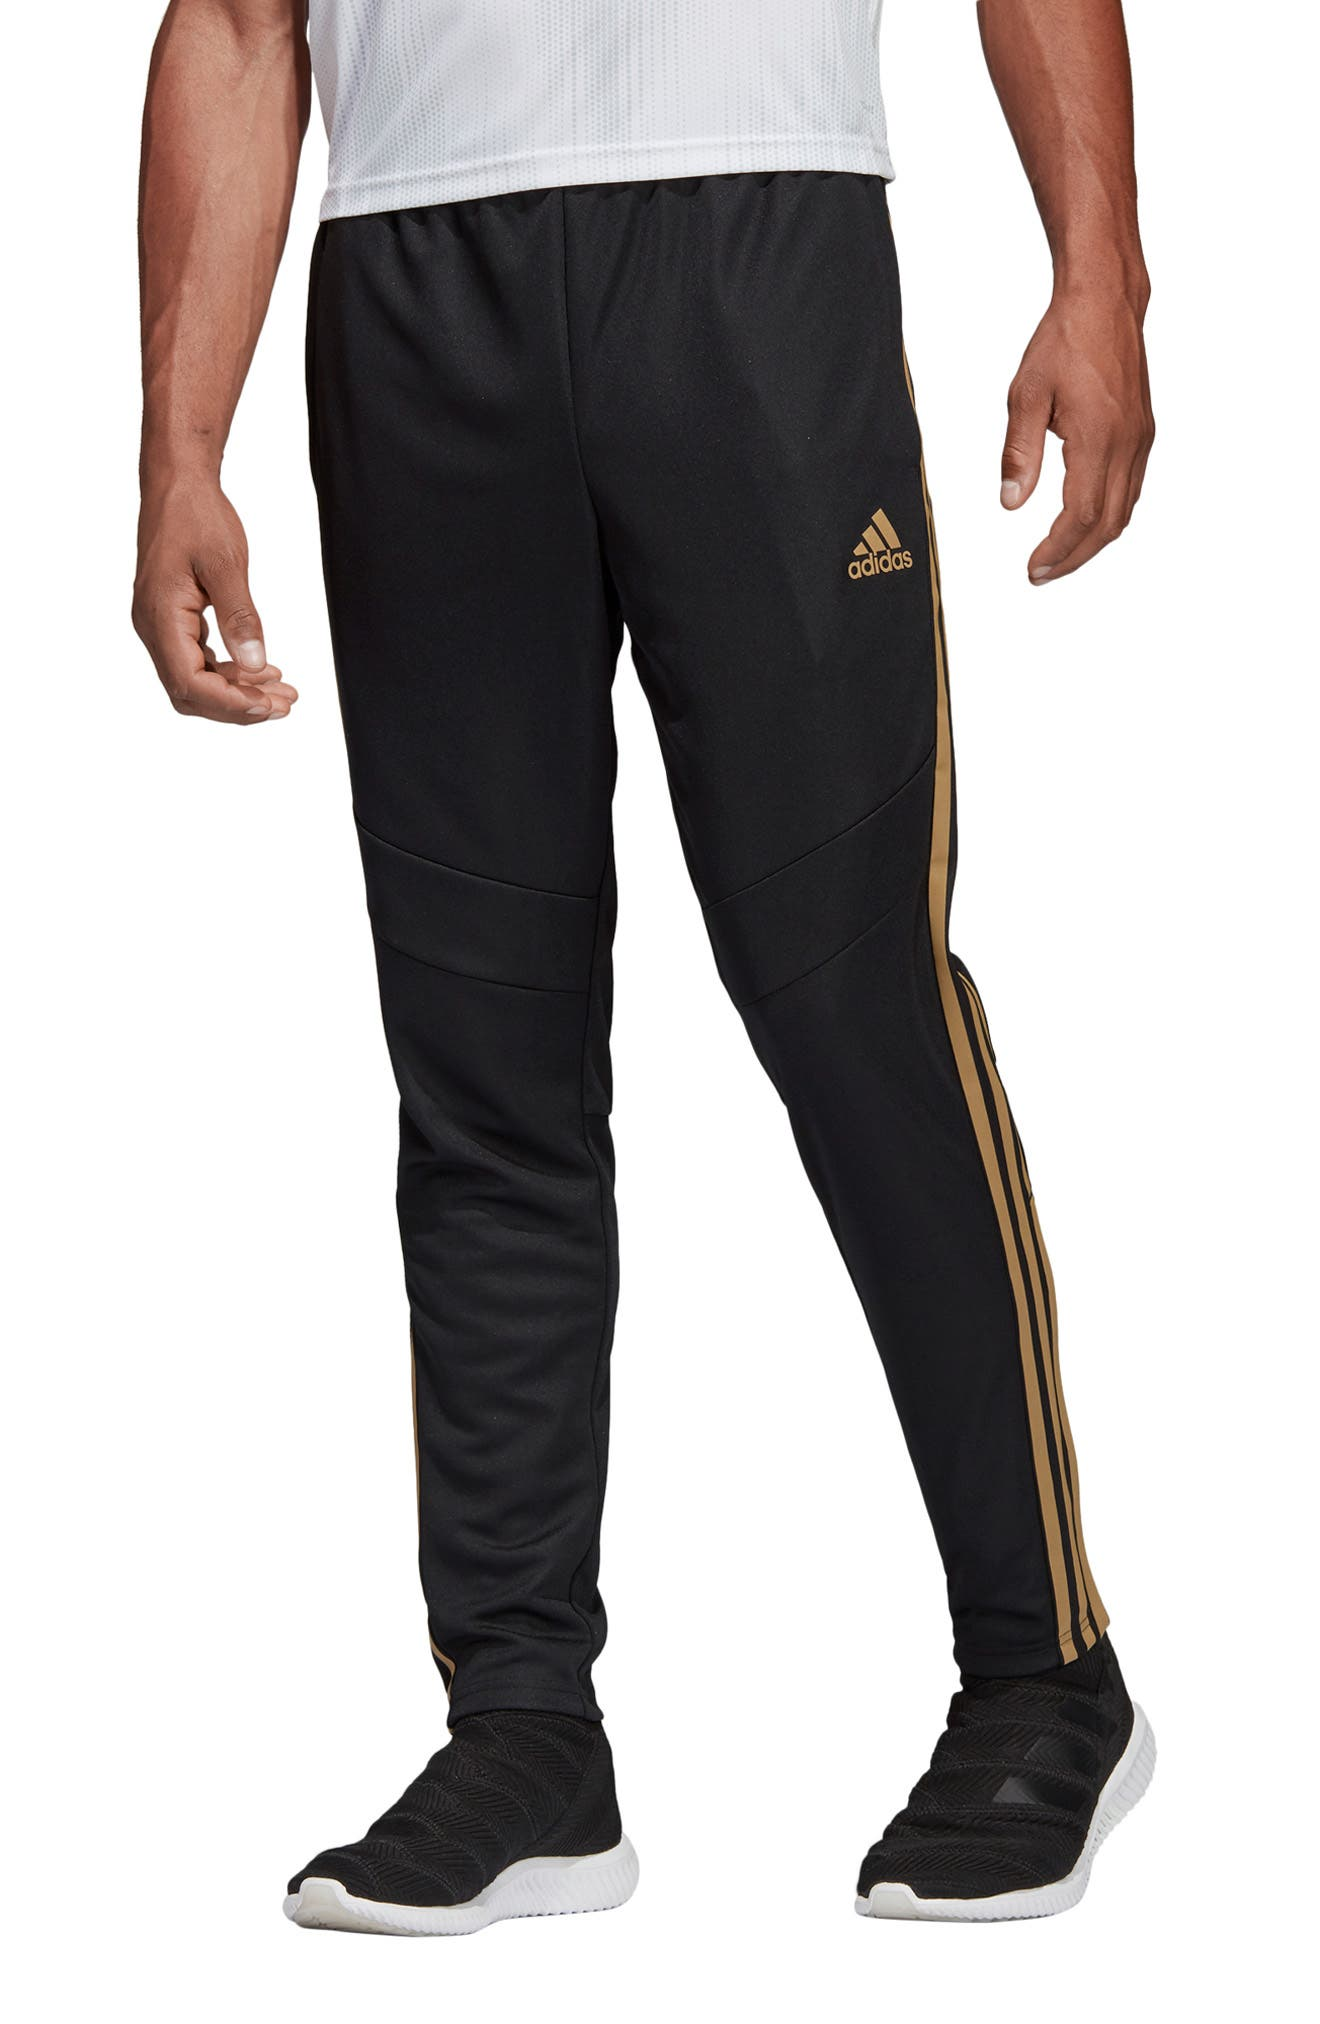 ADIDAS, Tiro 19 Training Pants, Main thumbnail 1, color, BLACK/ GOLD